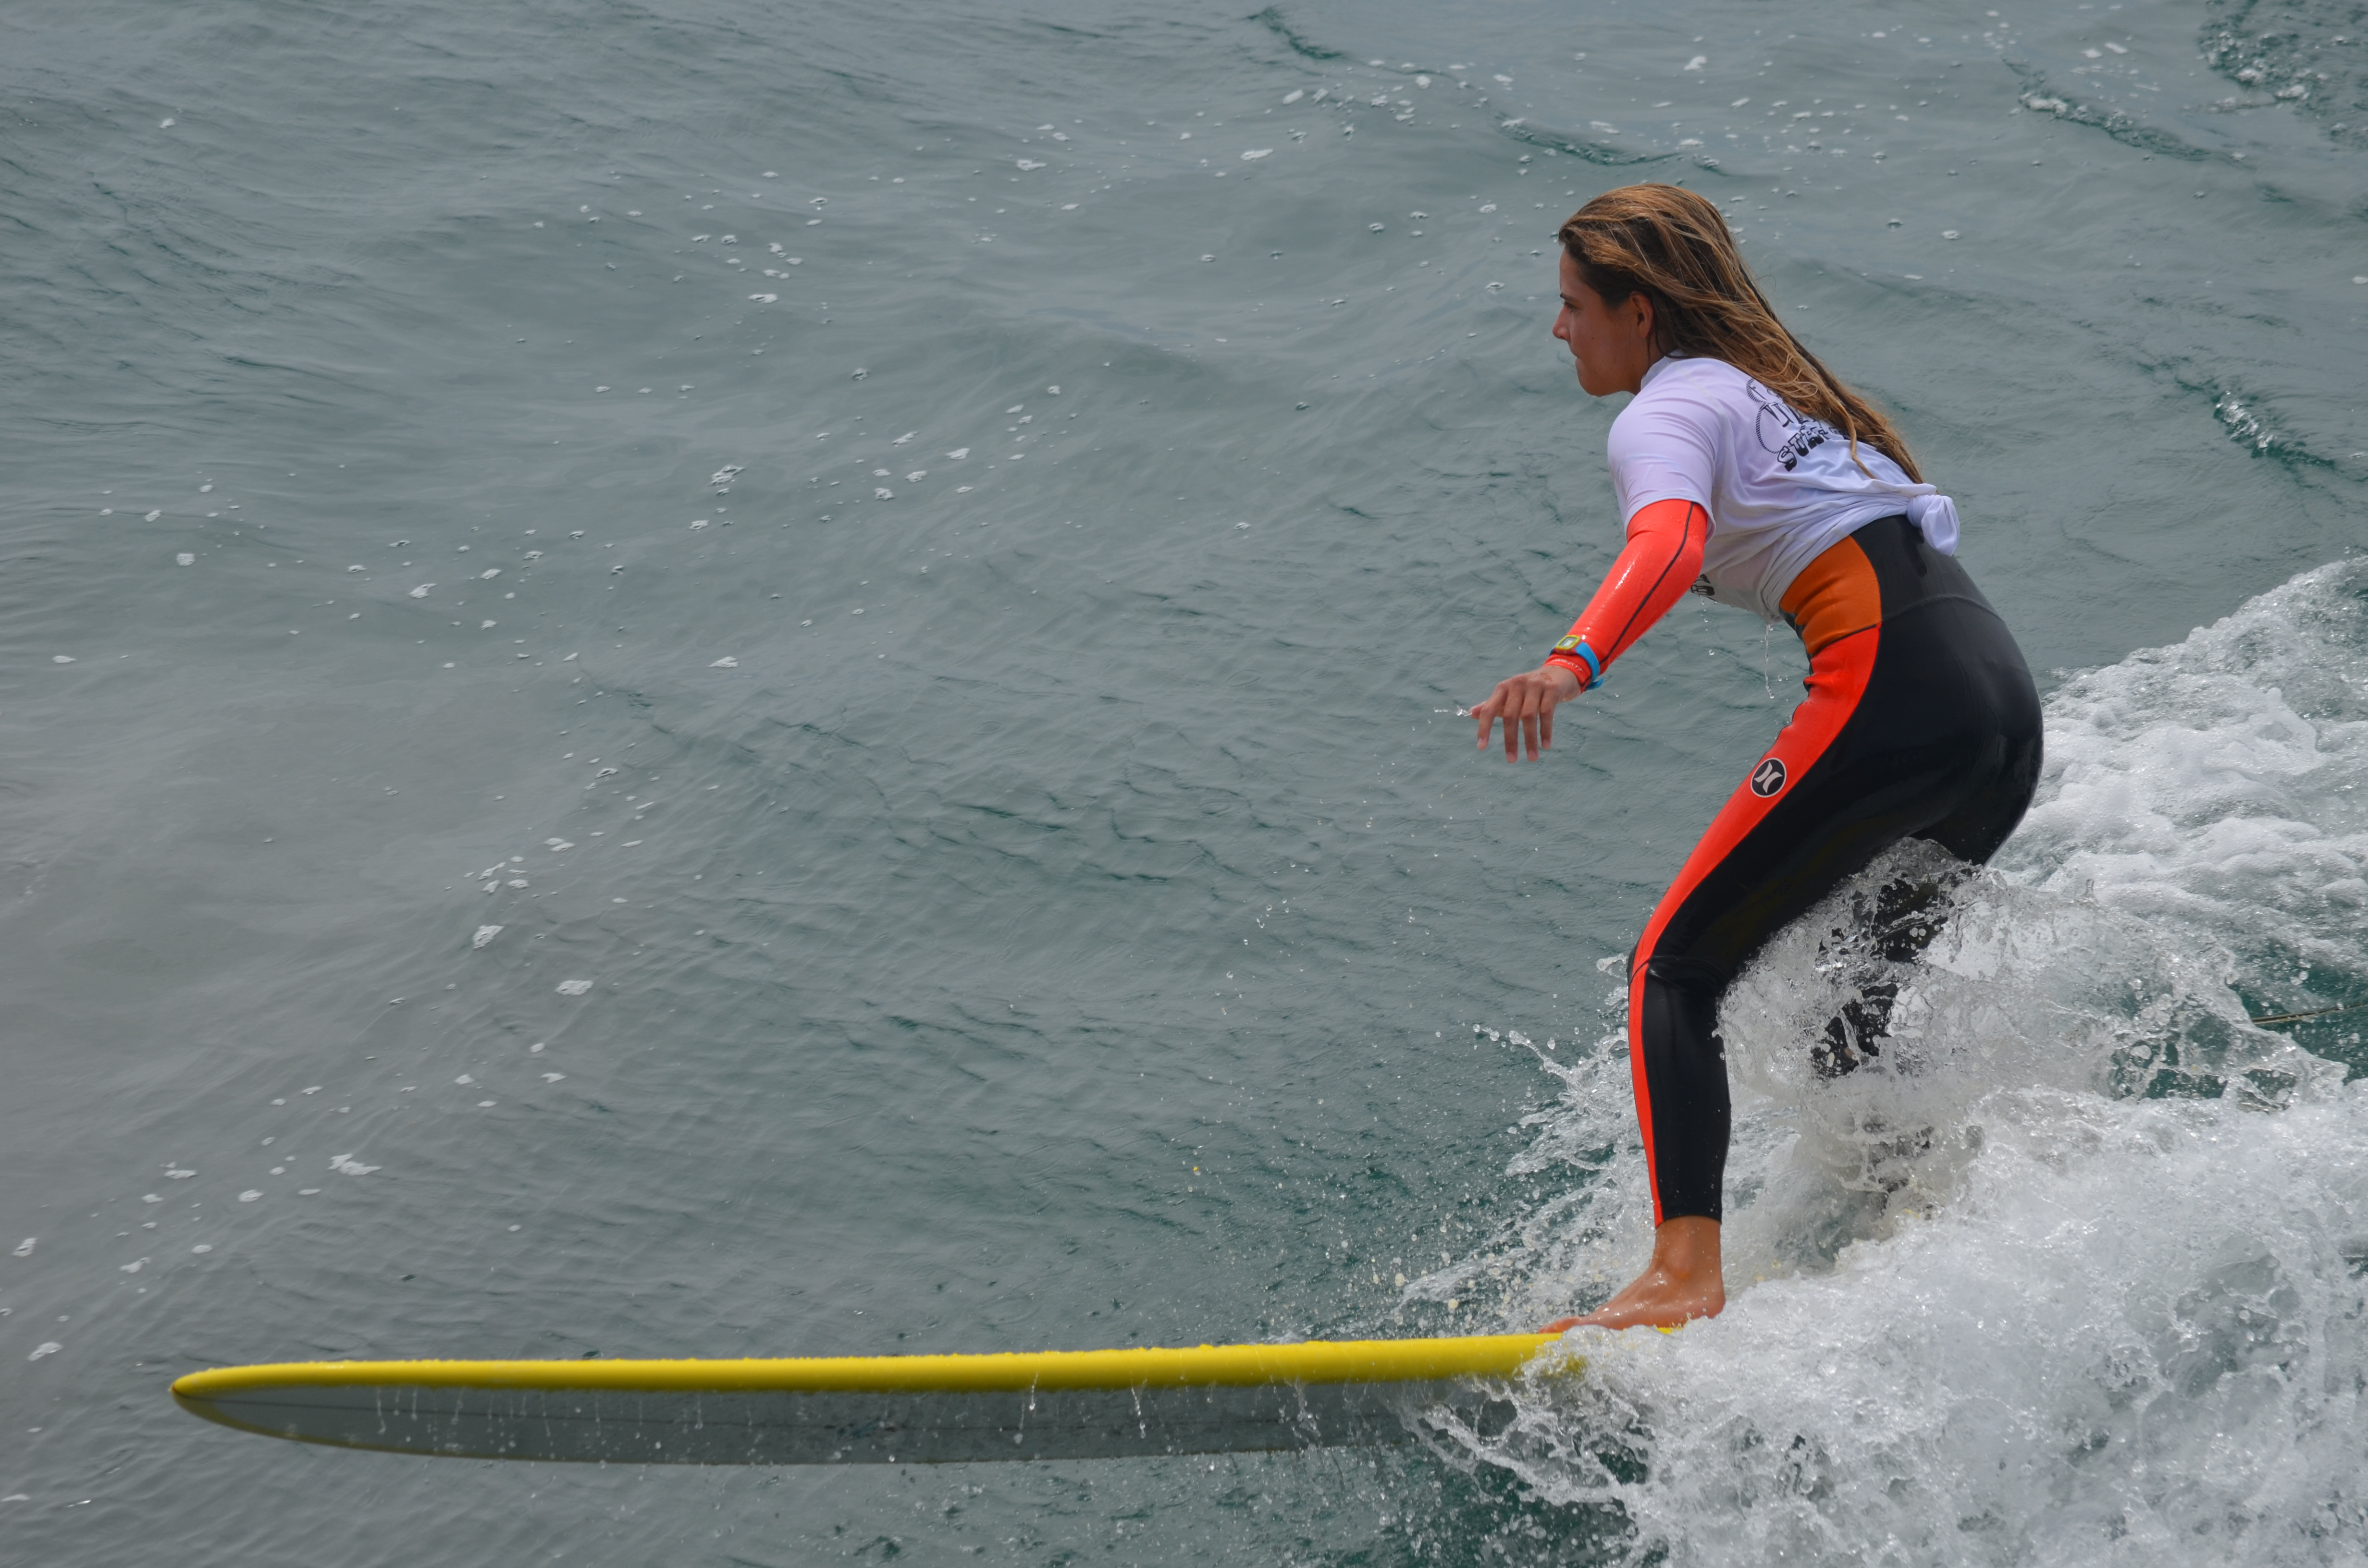 A competitor maneuvers her longboard along a wave on Sunday. Photo by Tony Cagala